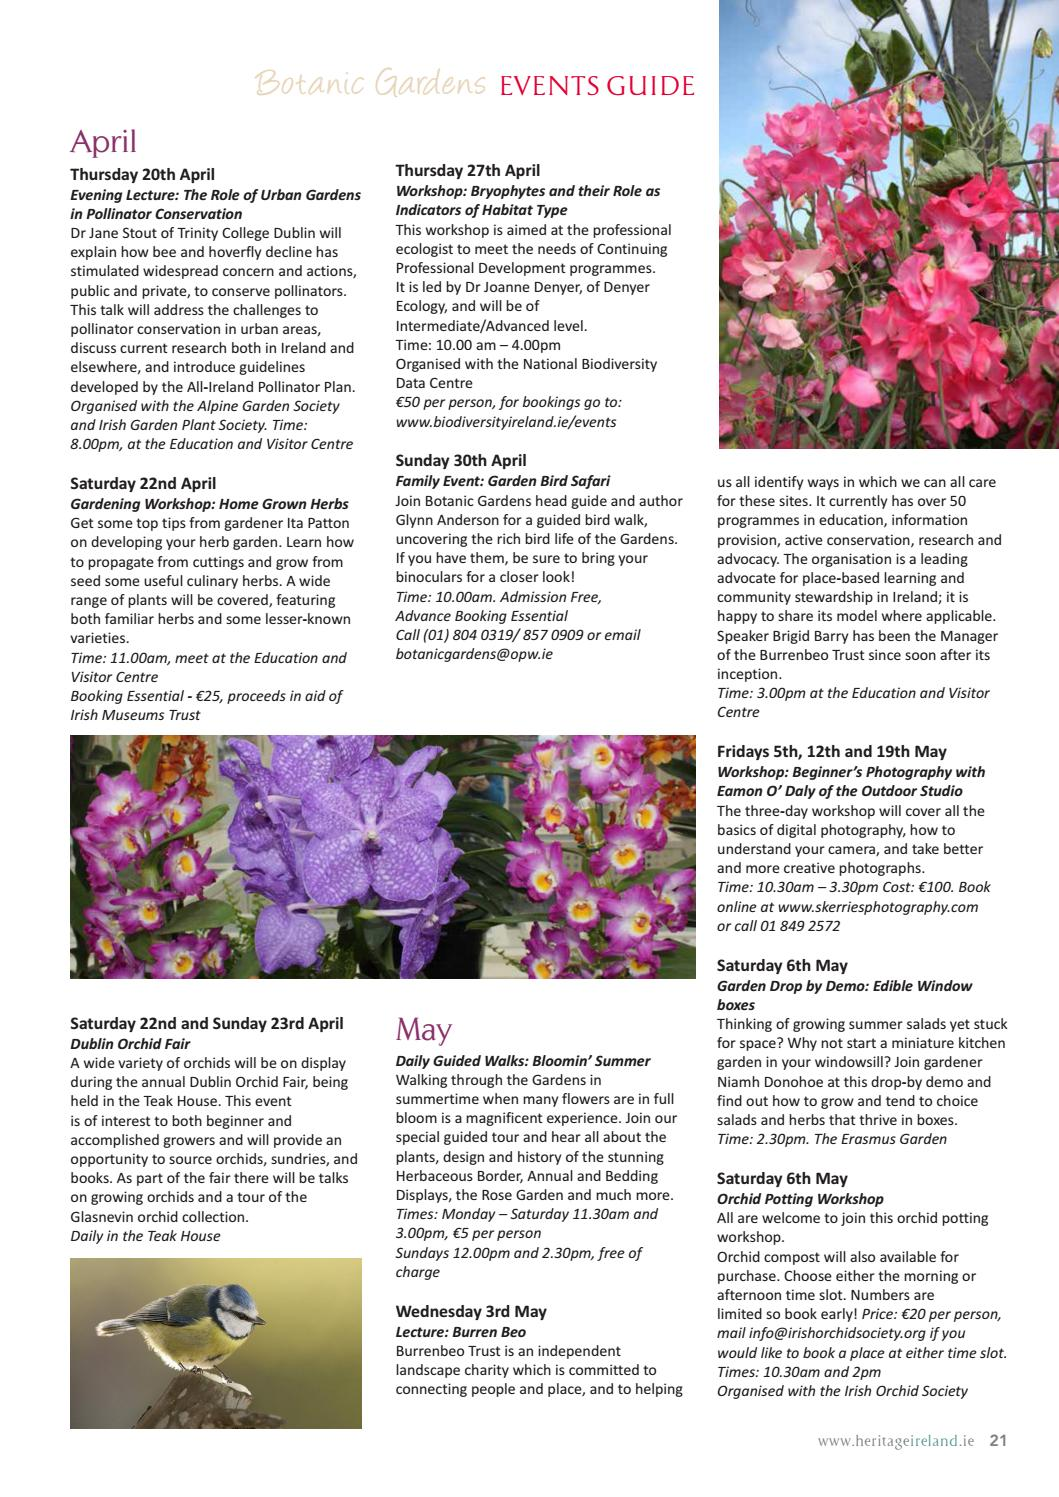 Heritage Ireland Issue 5 Spring 2017 by Office of Public Works - issuu